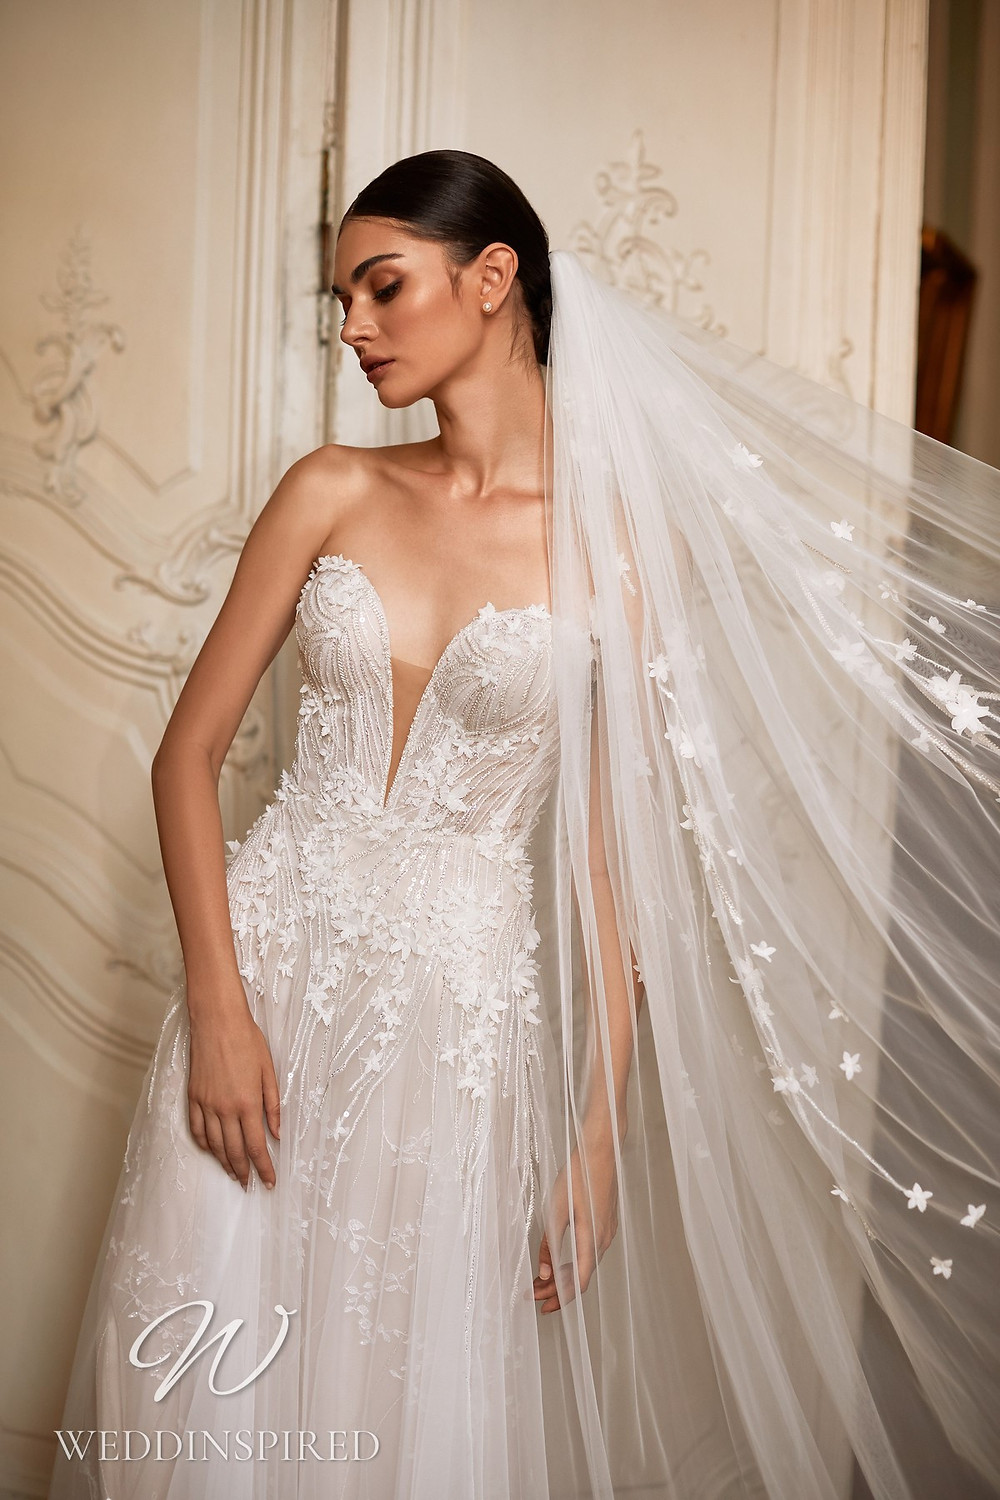 A Daria Karlozi 2021 strapless lace and tulle A-line wedding dress